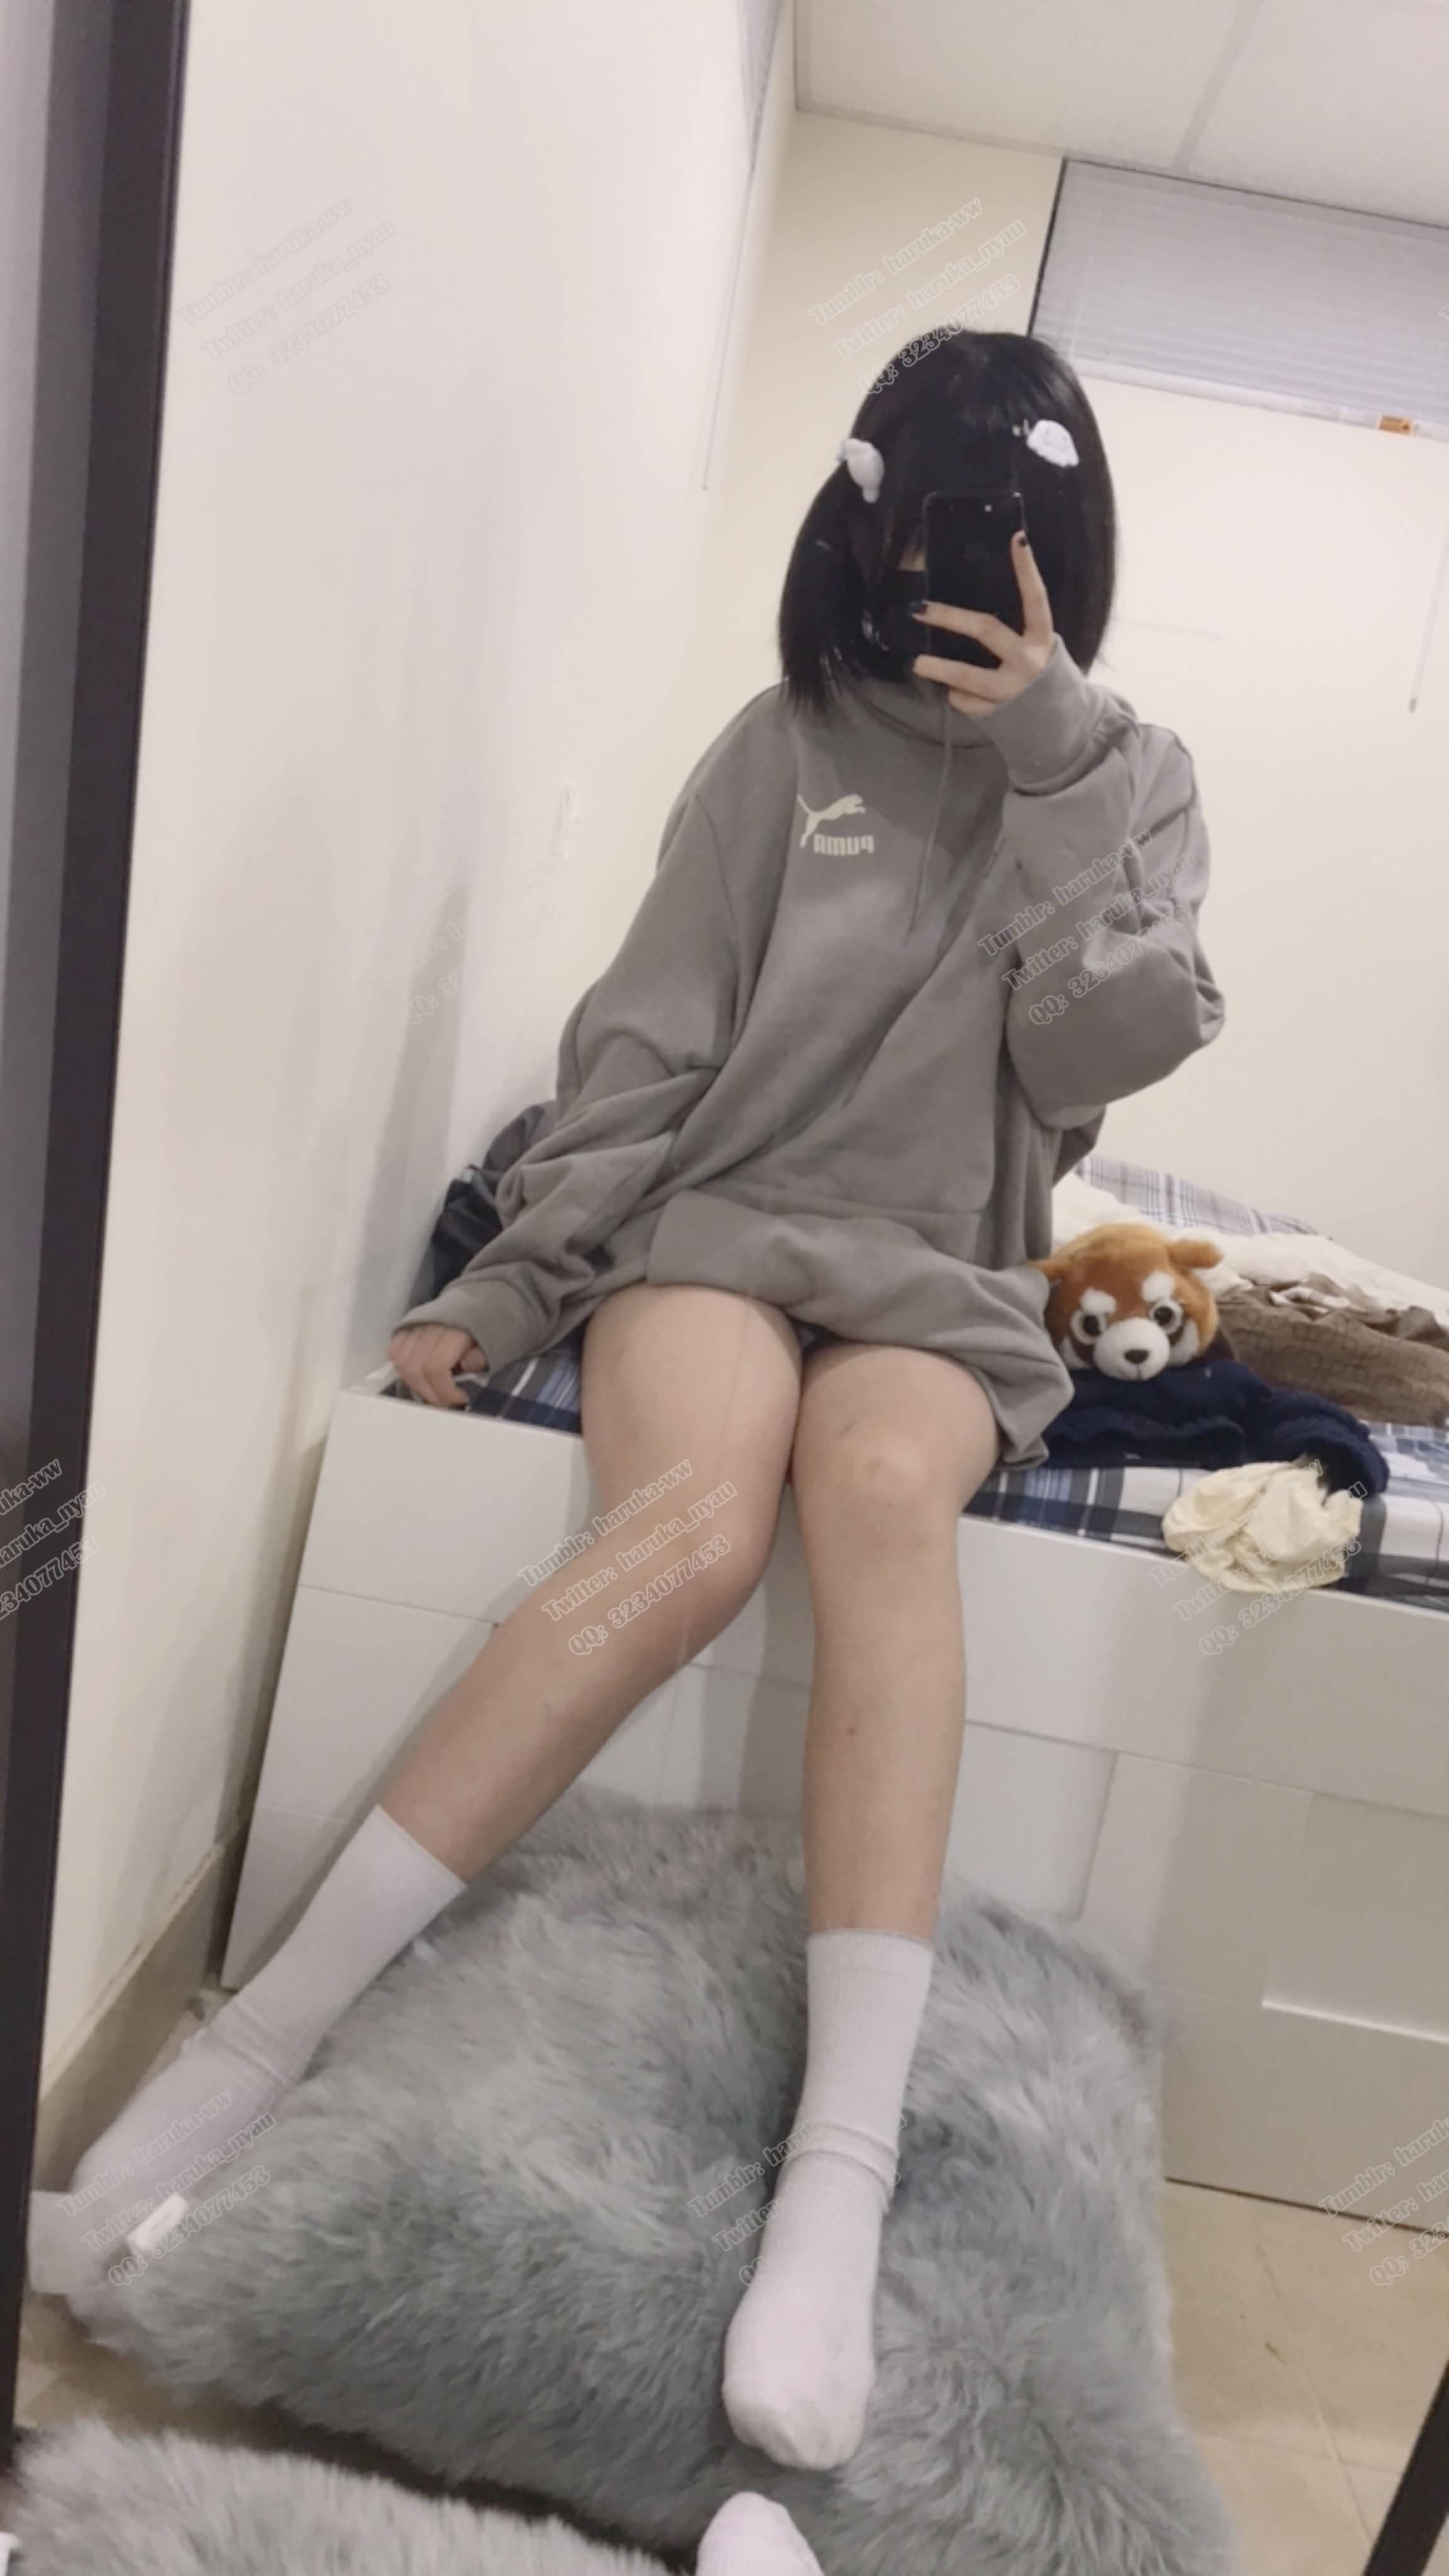 6qBy0d - Japanese school girl selfie for her big tits and hot pussy 悠宝三岁 自拍